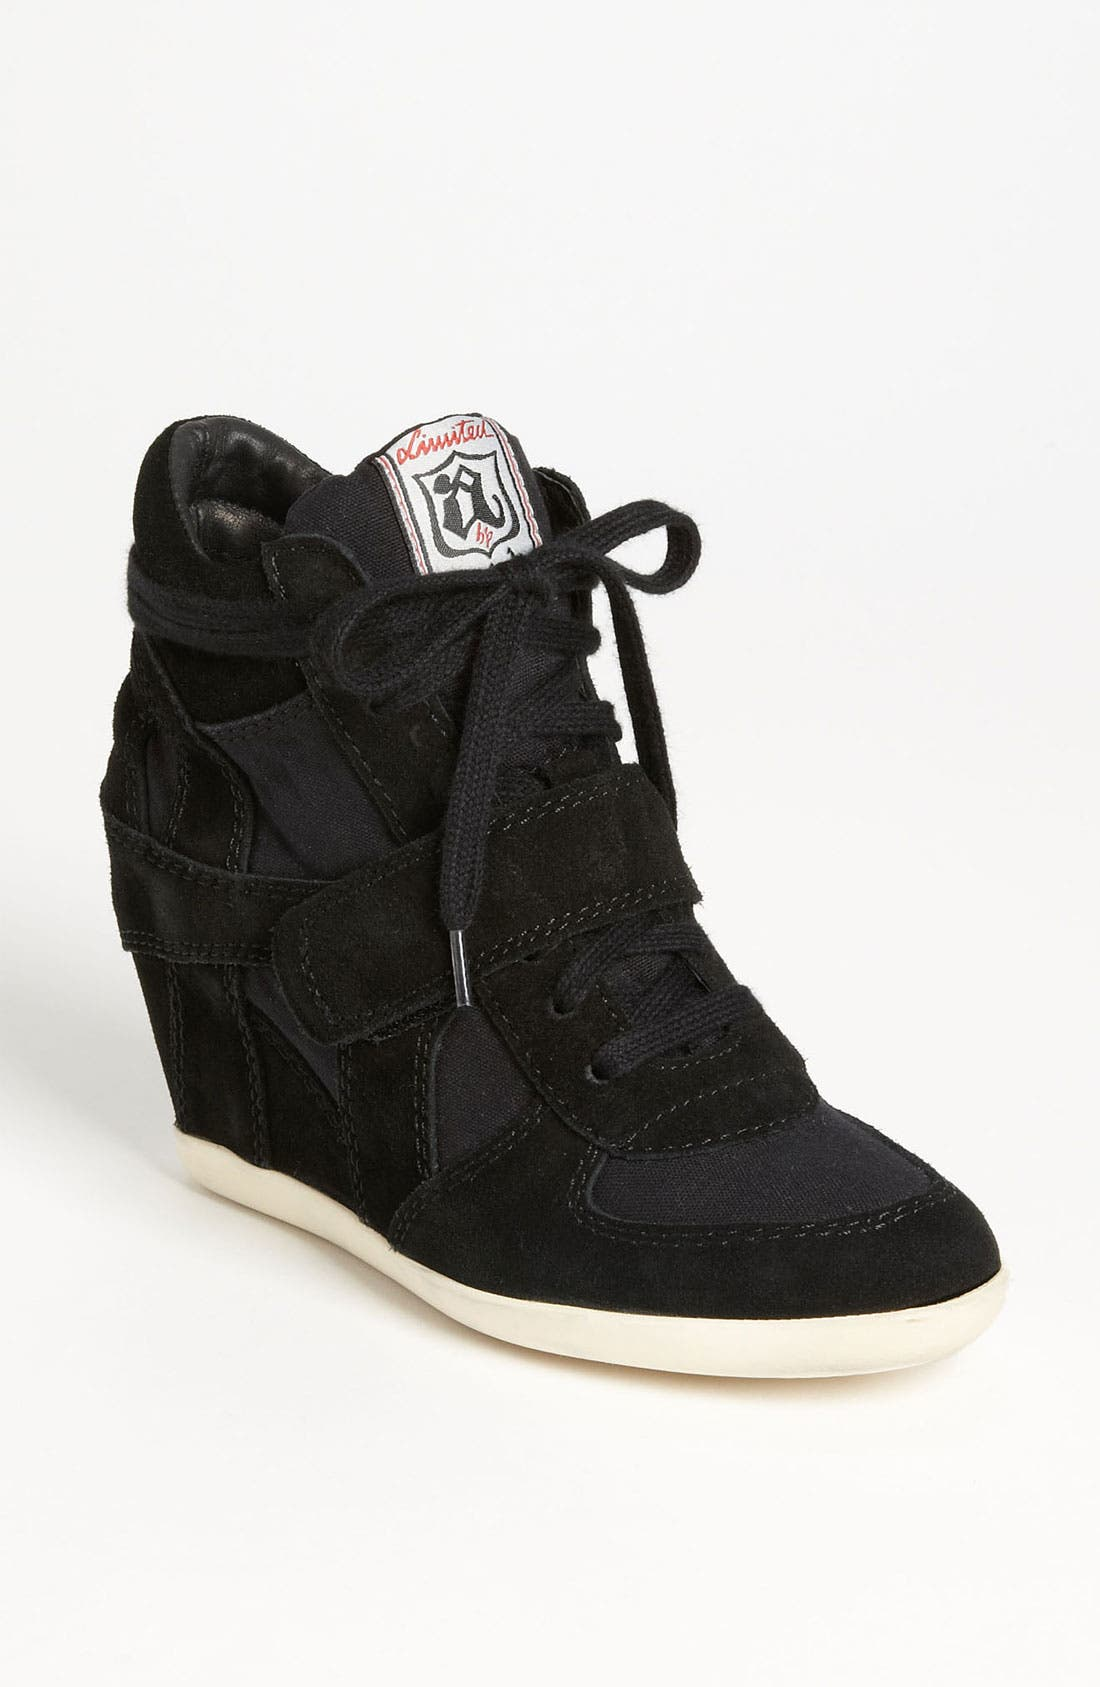 Alternate Image 1 Selected - Ash 'Bowie' Hidden Wedge Sneaker